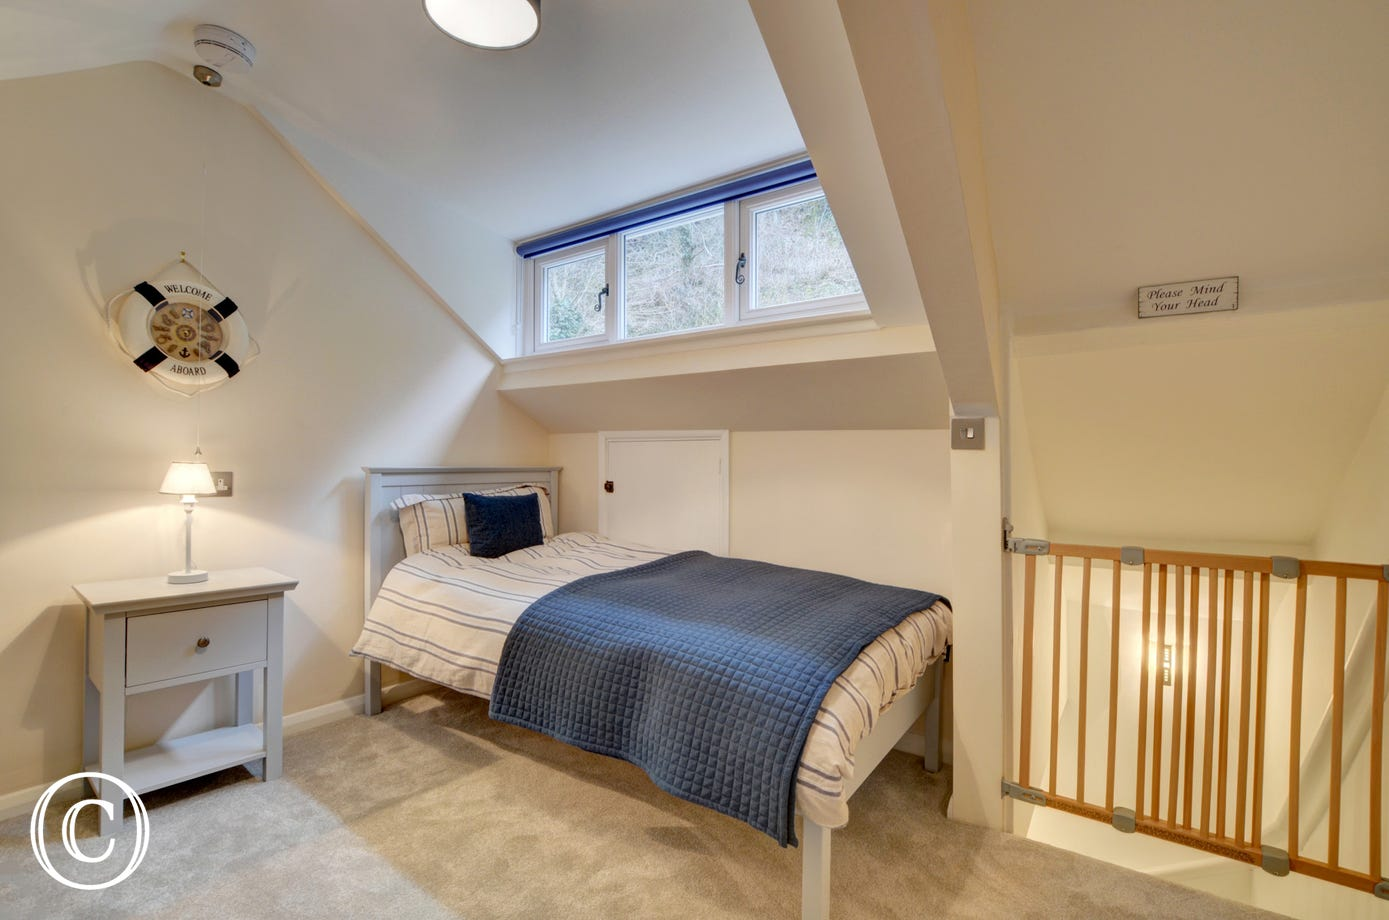 Further steep stairs to the second floor opens out into a second attractive bedroom with sloping ceiling and twin beds